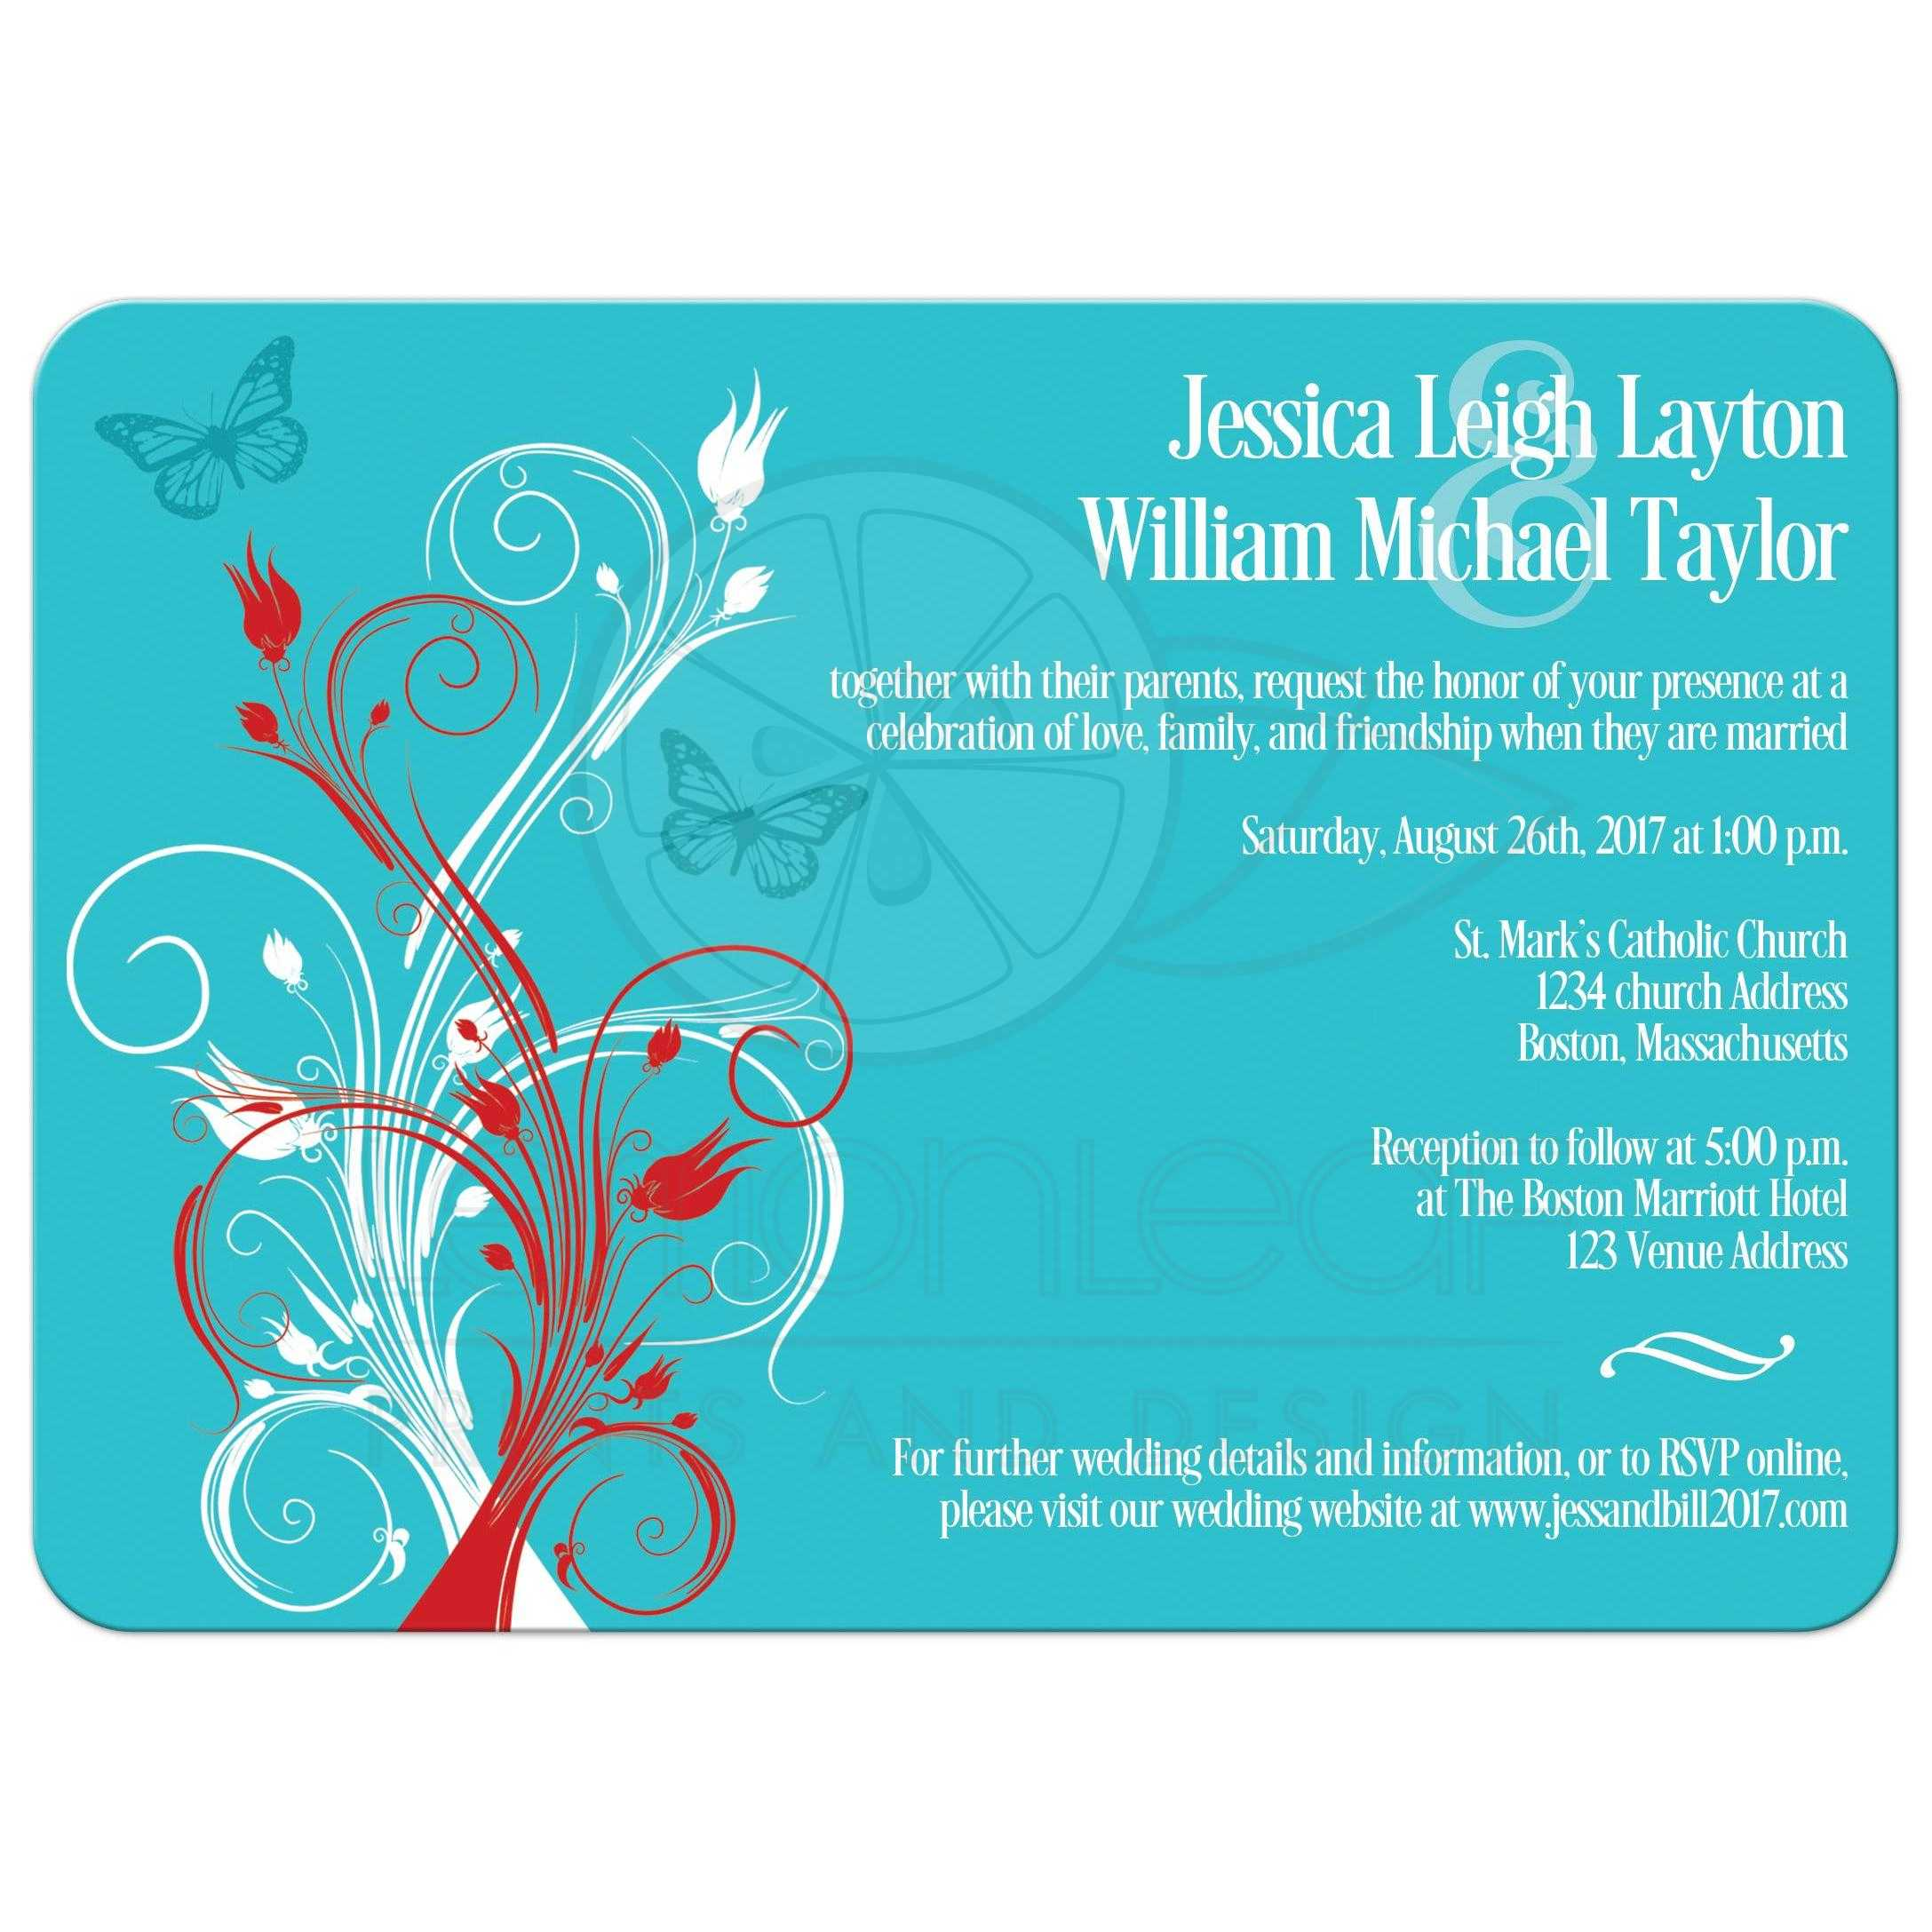 Red Aqua Or Teal Blue And White Wedding Invites With Butterflies Flowers